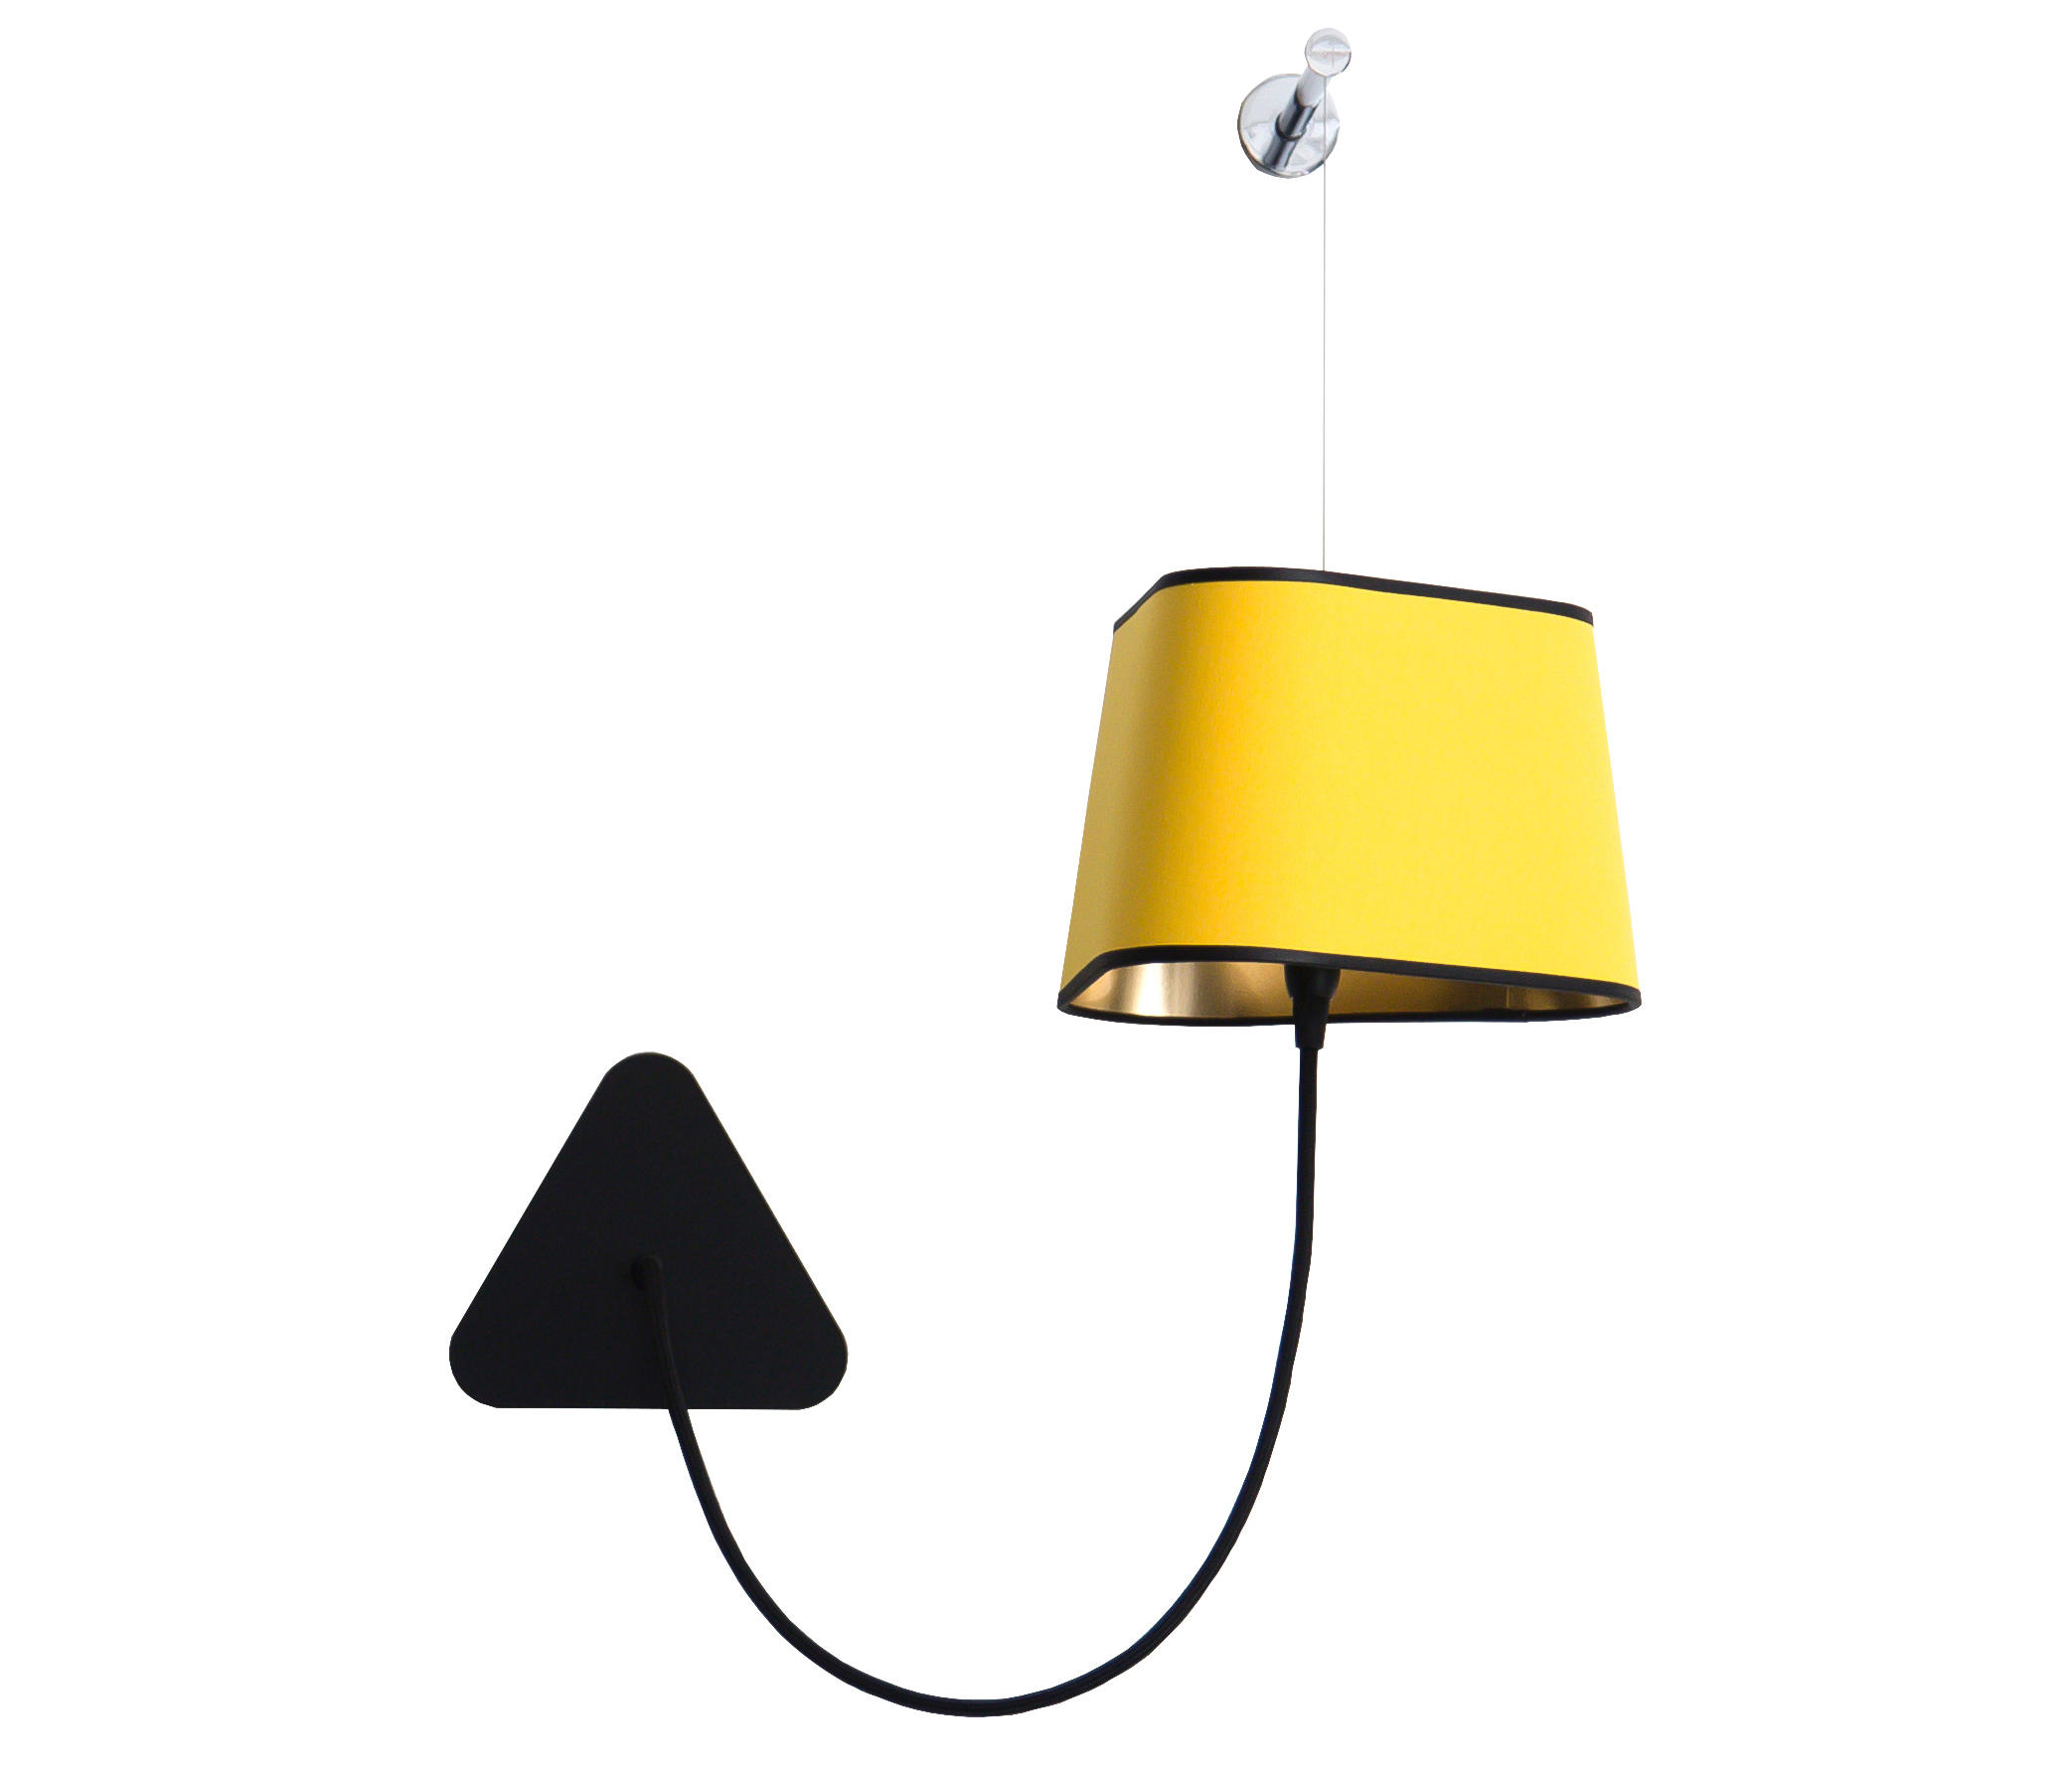 nuage wall lamp small allgemeinbeleuchtung von designheure architonic. Black Bedroom Furniture Sets. Home Design Ideas